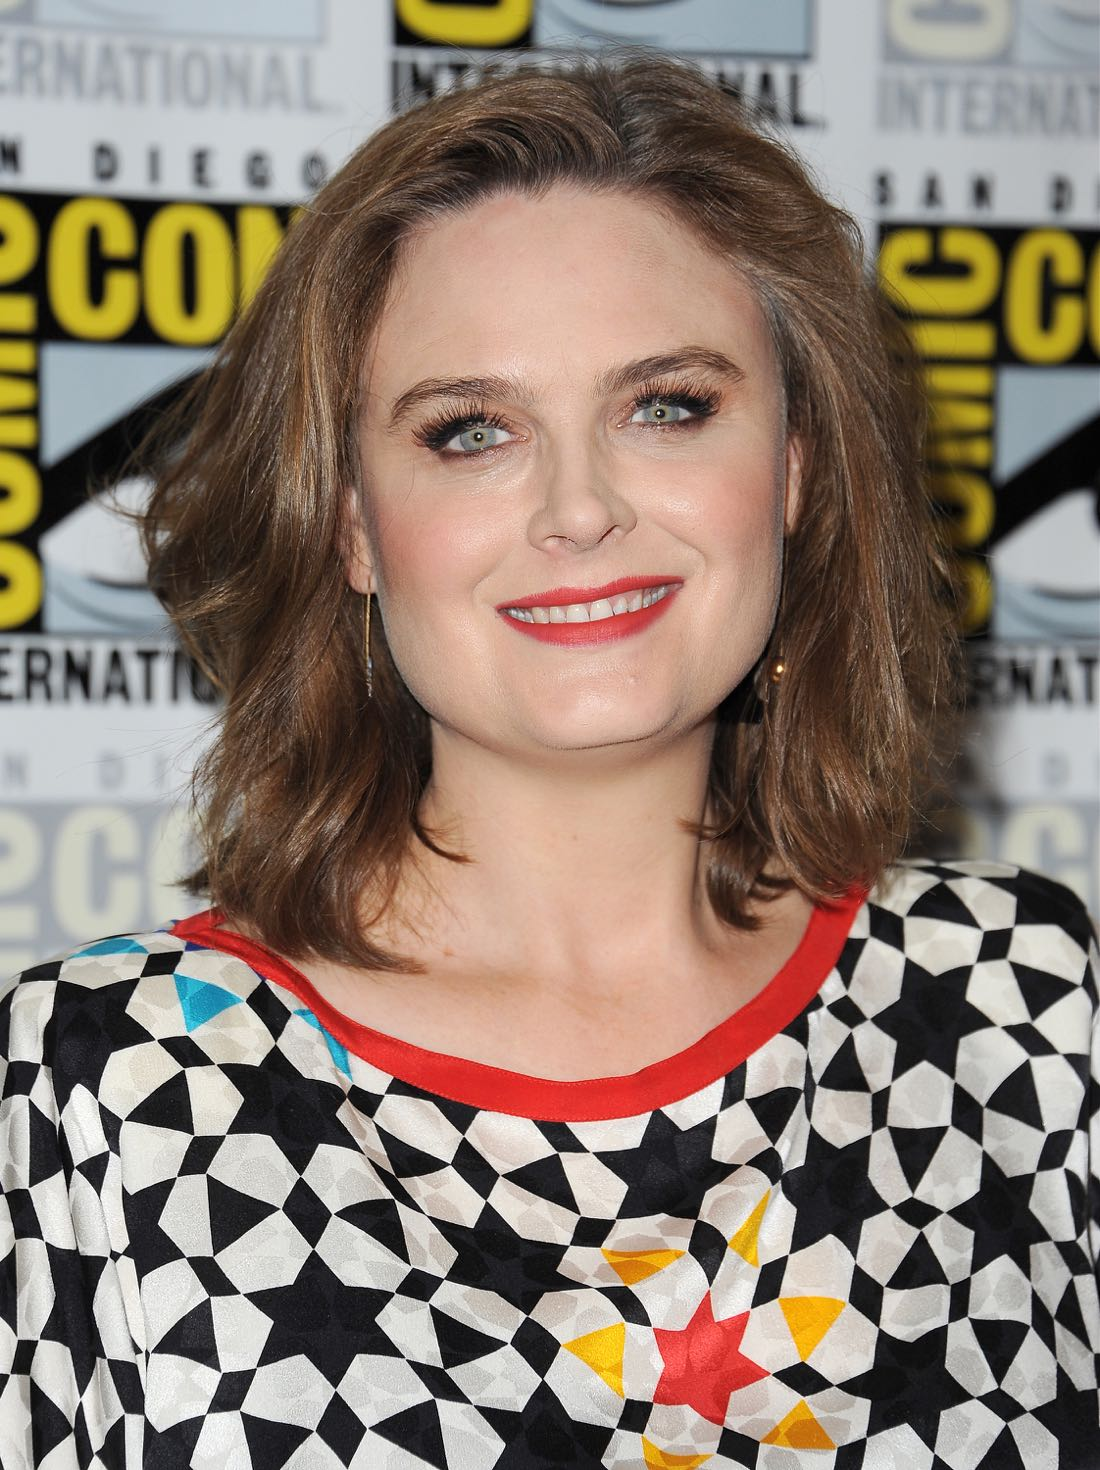 FOX FANFARE AT SAN DIEGO COMIC-CON © 2016: BONES cast member Emily Deschanel during the BONES press room on Friday, July 22 at the FOX FANFARE AT SAN DIEGO COMIC-CON © 2016. CR: Scott Kirkland/FOX © 2016 FOX BROADCASTING